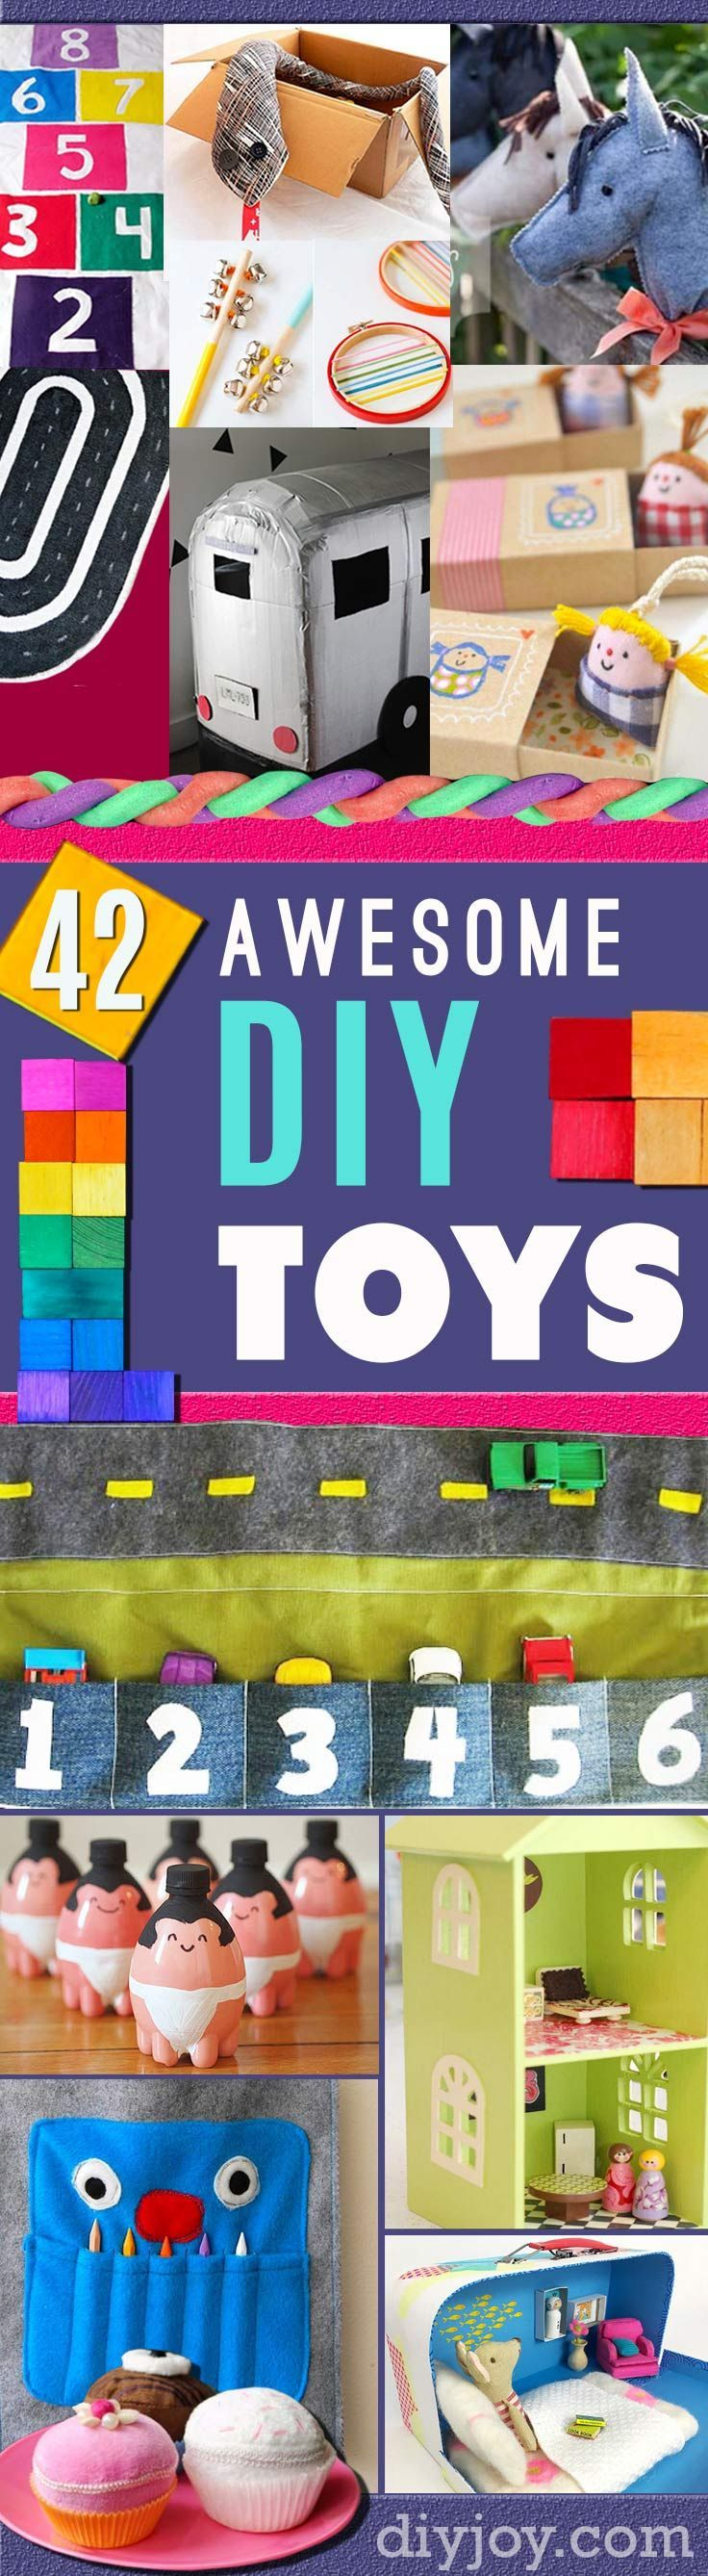 41 fun diy gifts to make for kids perfect homemade christmas presents solutioingenieria Image collections